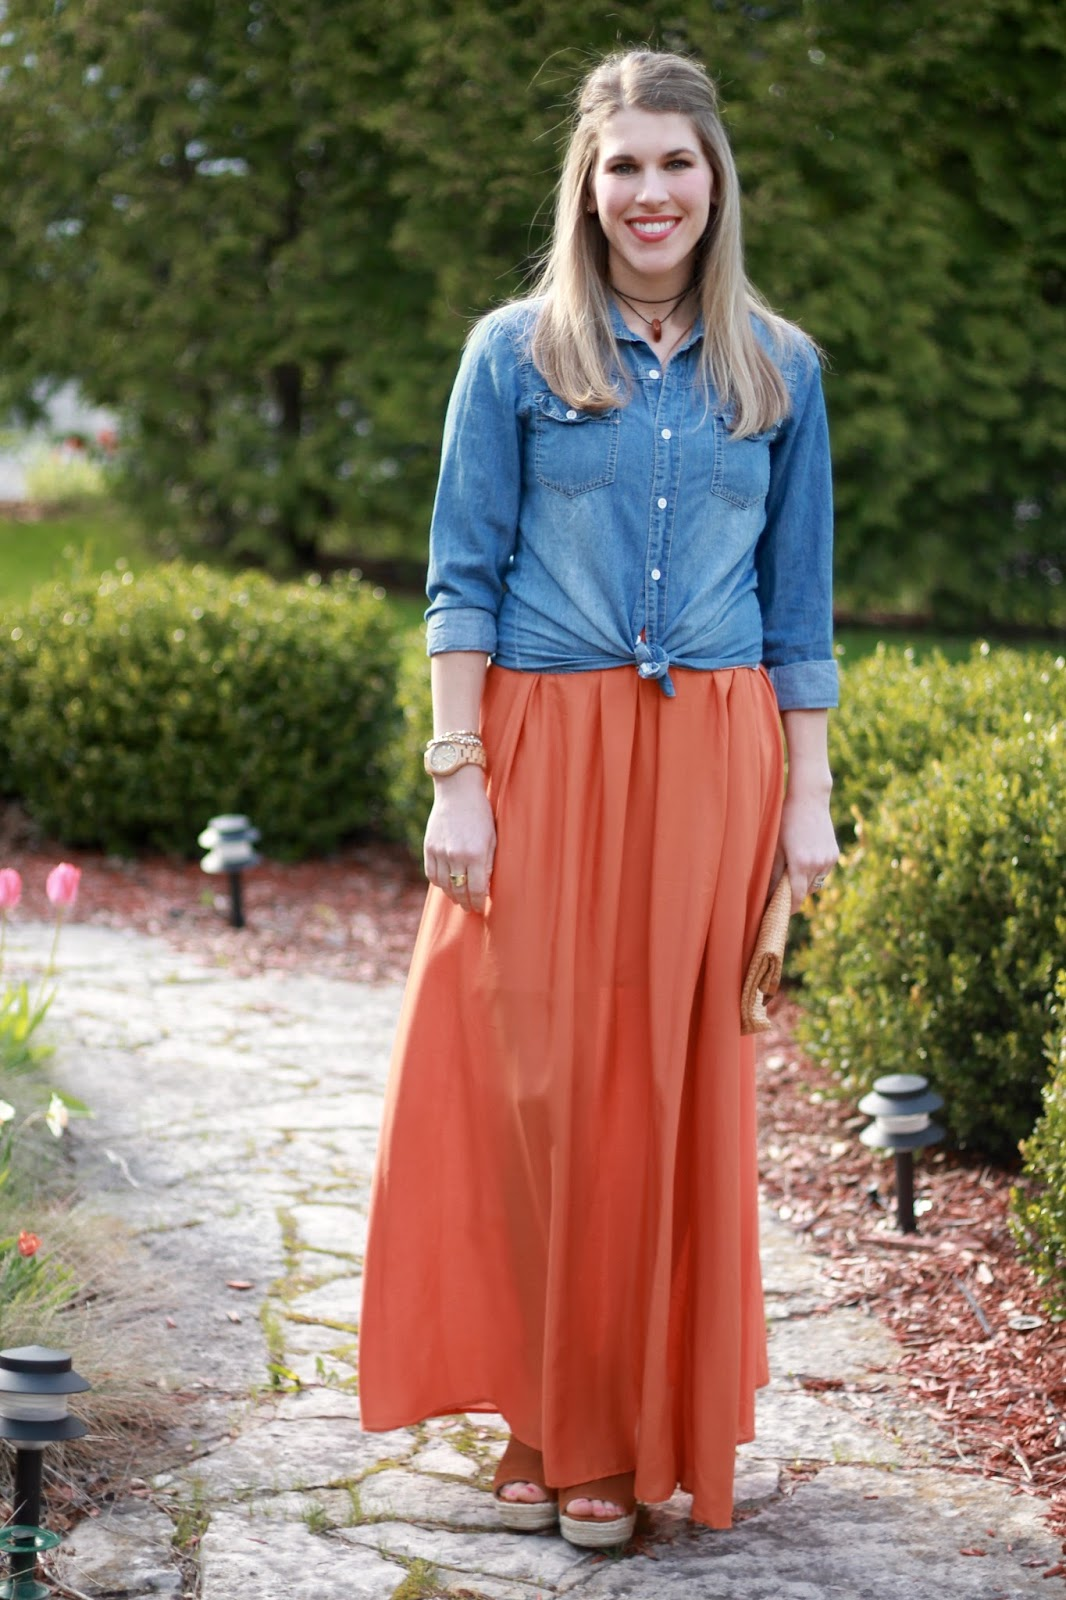 orange maxi skirt, chambray, Steve Madden wedge sandals, straw clutch, choker necklace, wood watch